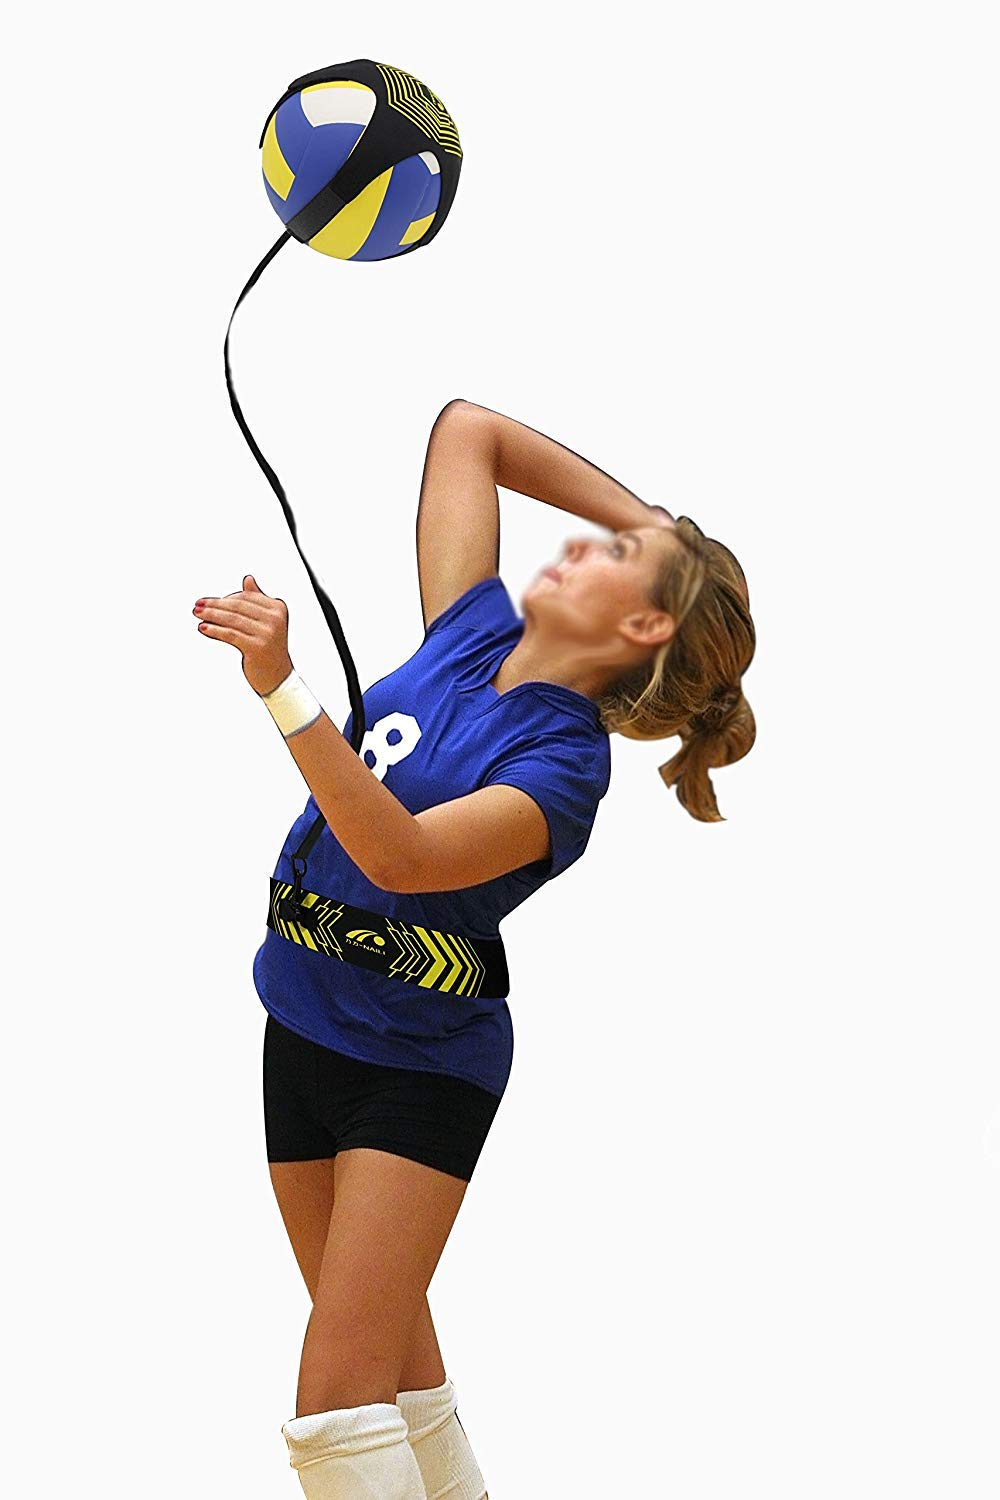 KEAIOU Volleyball Football Training Equipment Aid,Swing Spike Ball Tether Waist Trainer Adjustable Waist Belt Cord Length Solo Practice of Serving Tosses Arm Swings